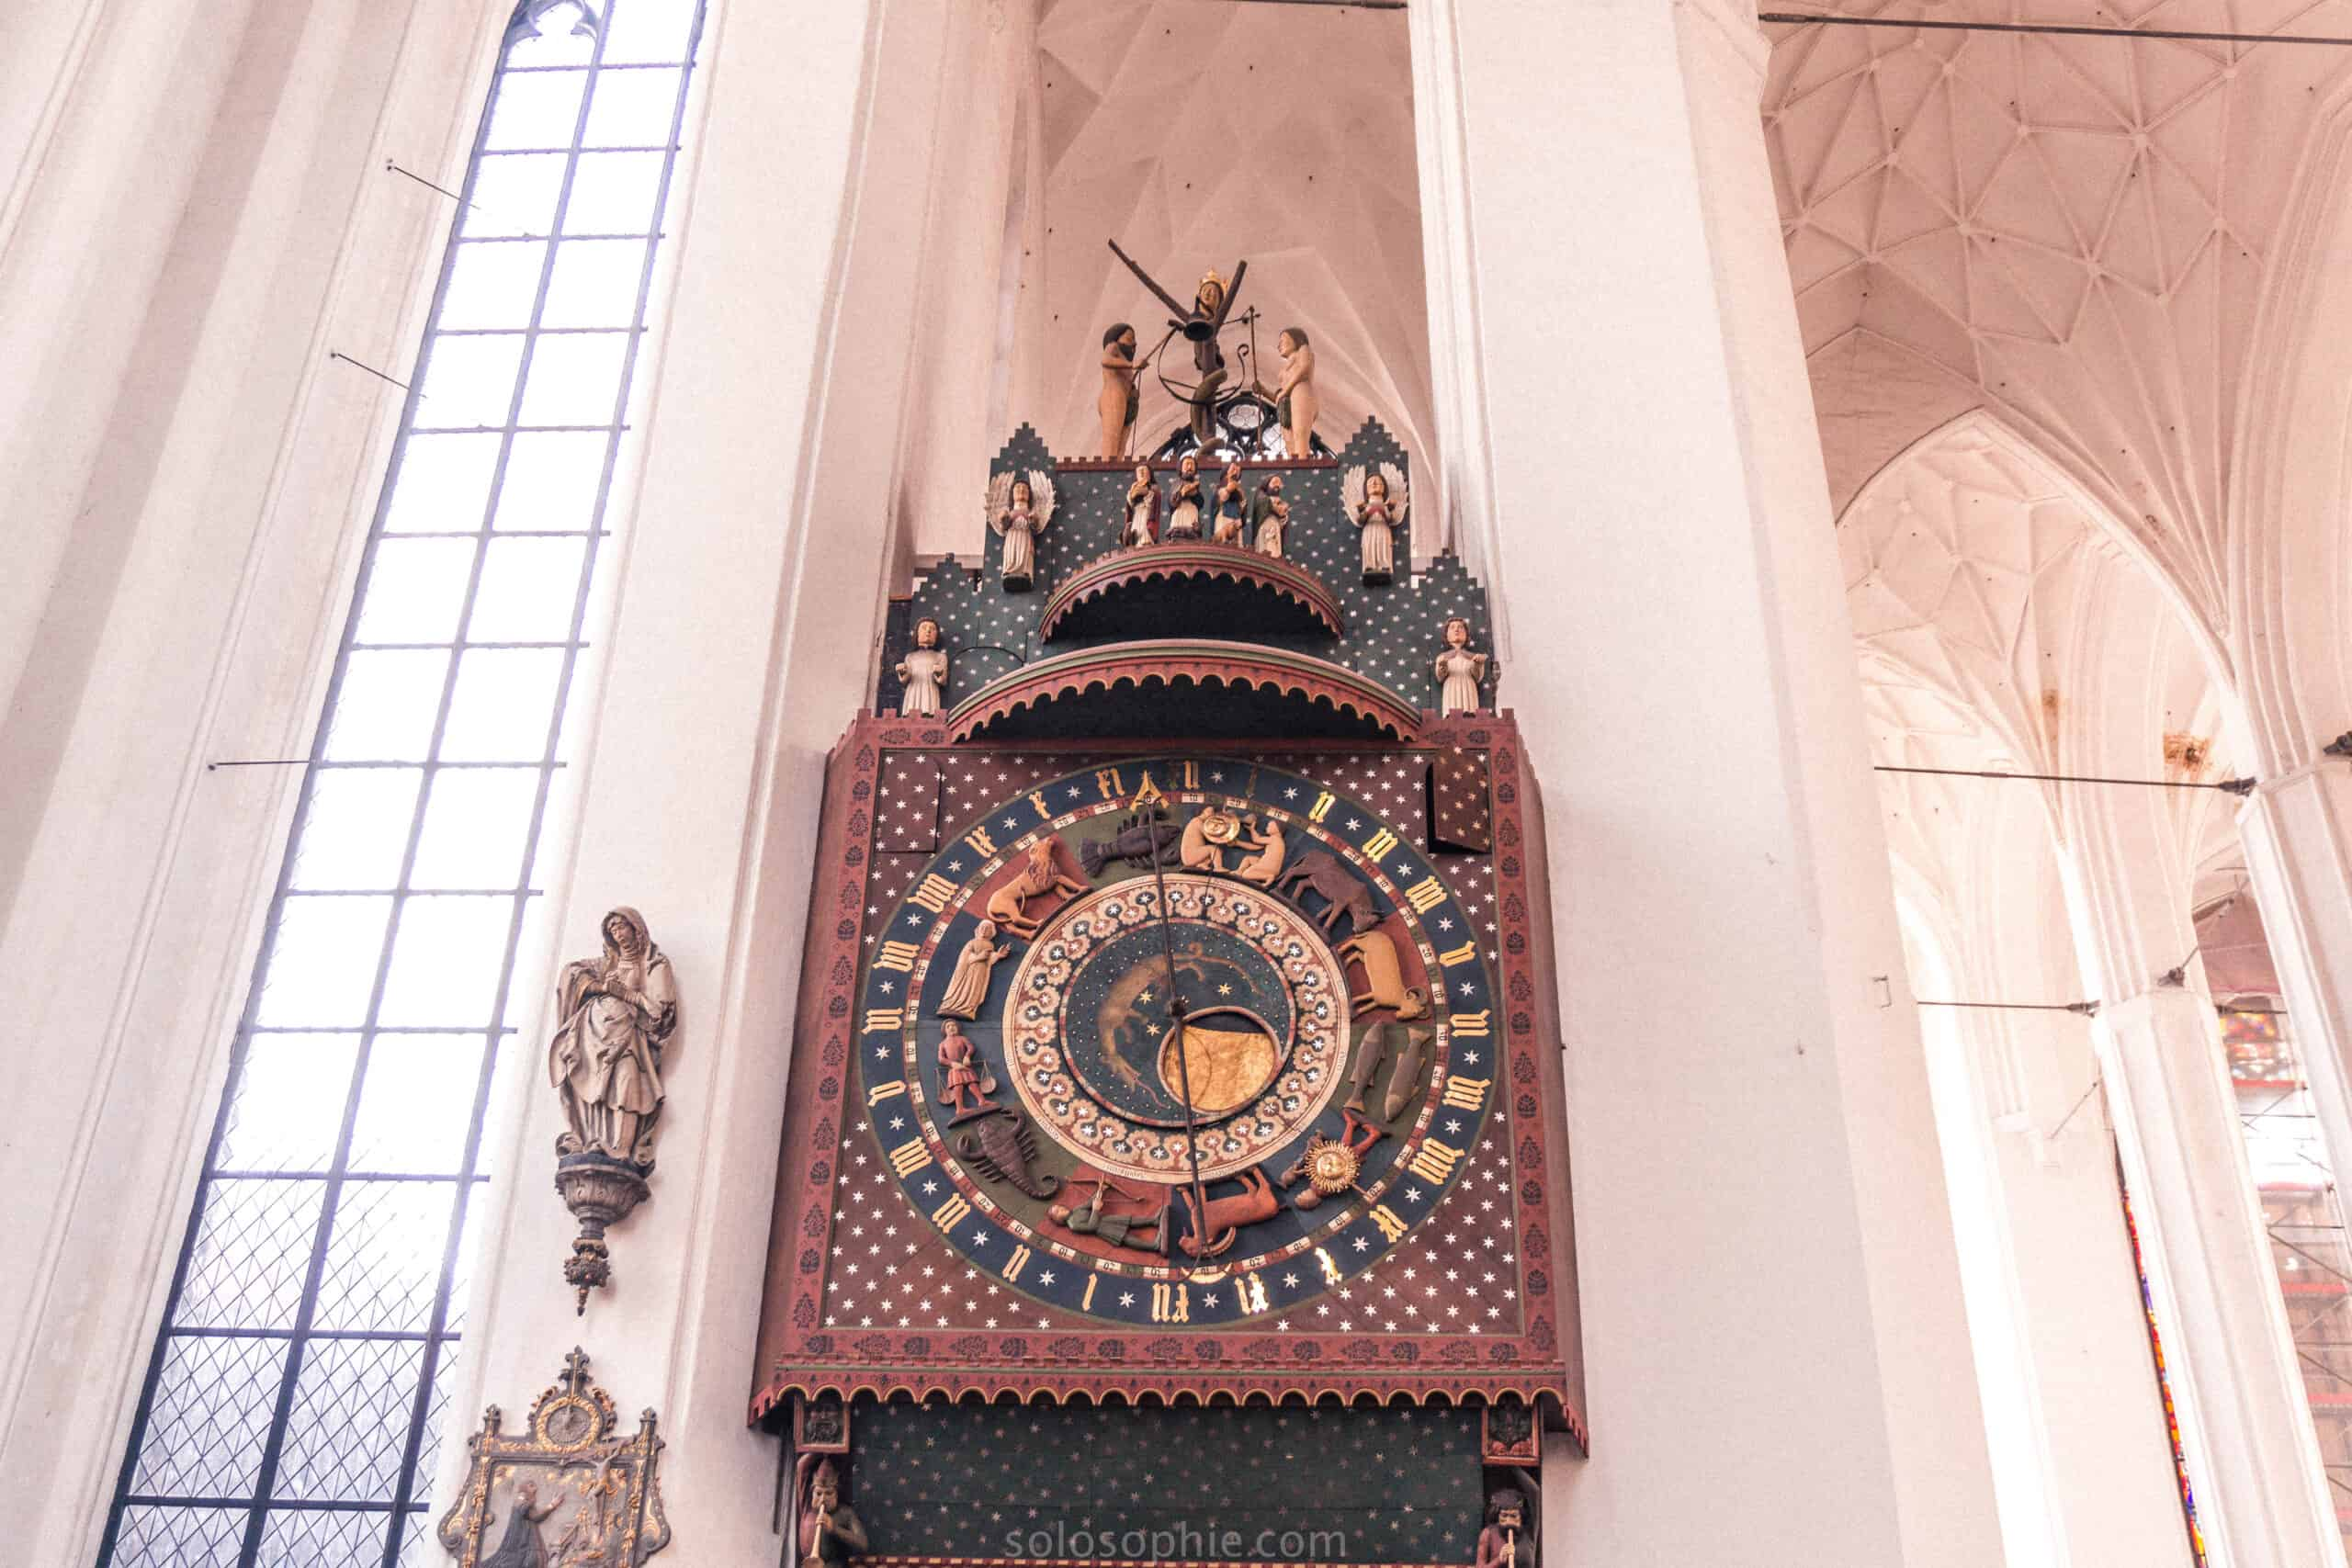 Gdansk astronomical clock: 15th-century wooden clock in Northern Poland